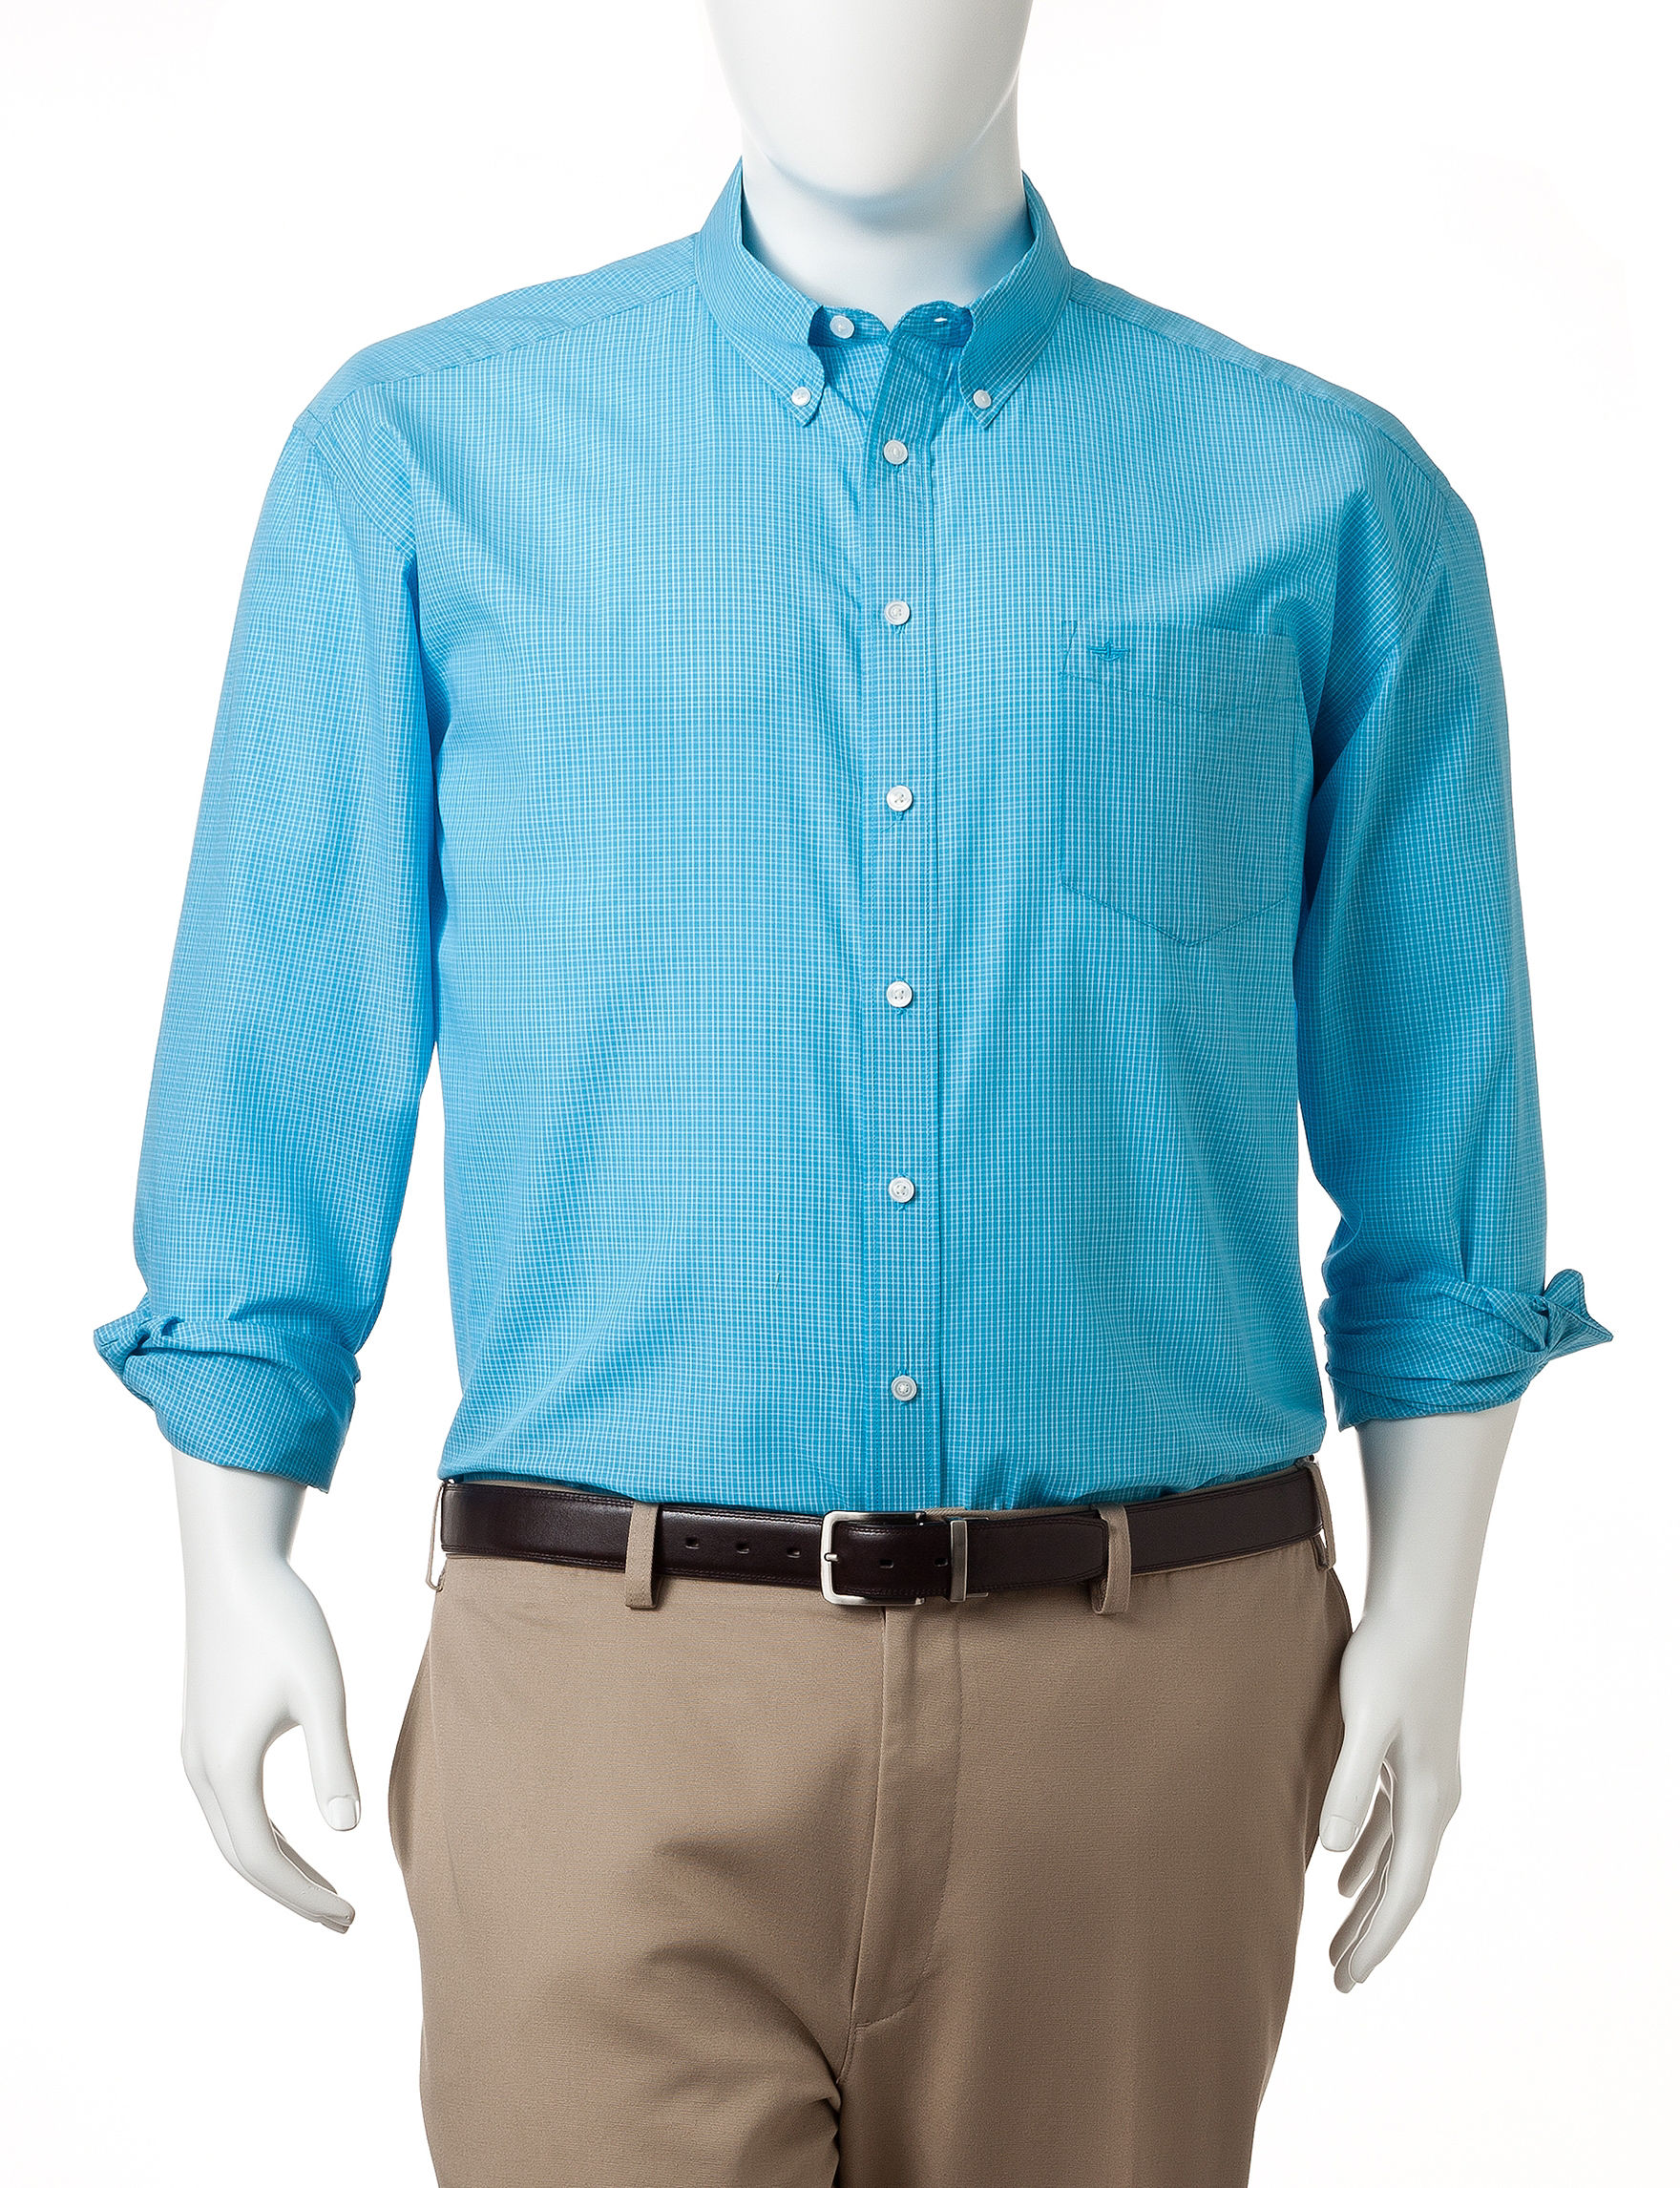 Dockers Edgewater Casual Button Down Shirts